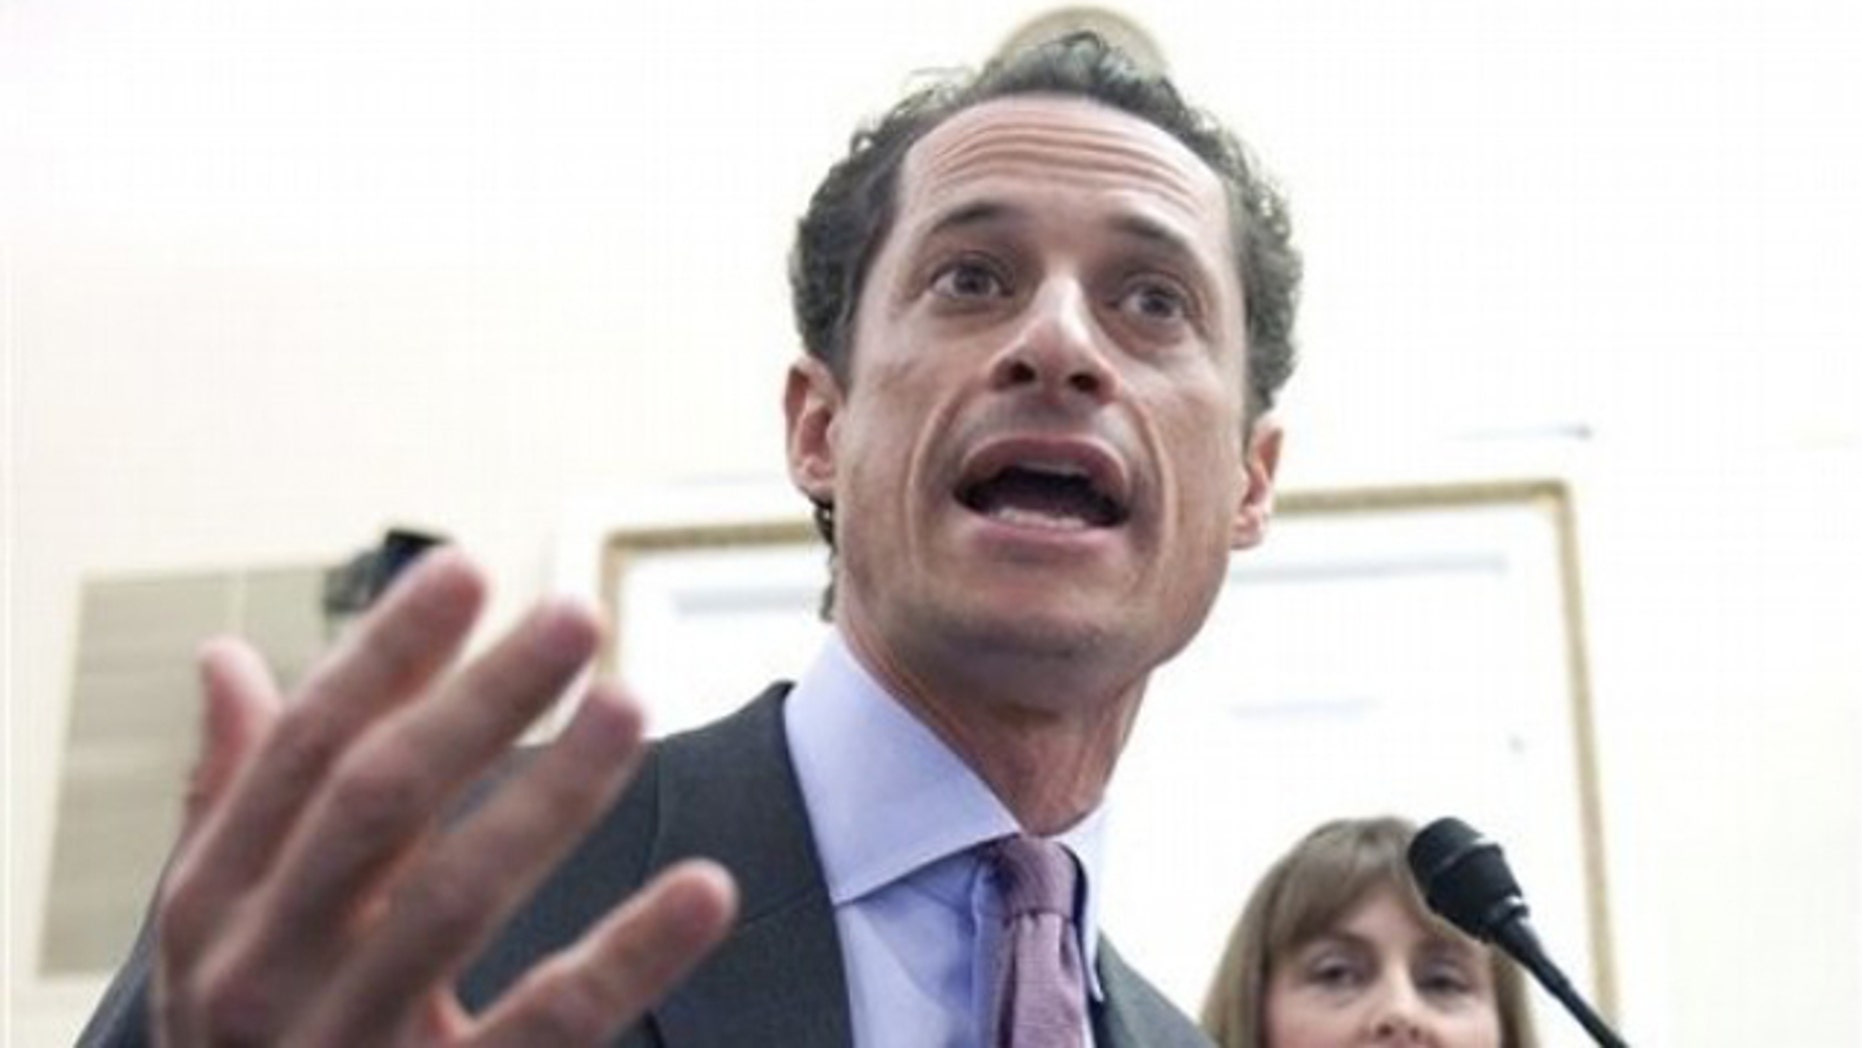 Rep. Anthony Weiner testifies on Capitol Hill in Washington Jan. 6 before the House Rules Committee.